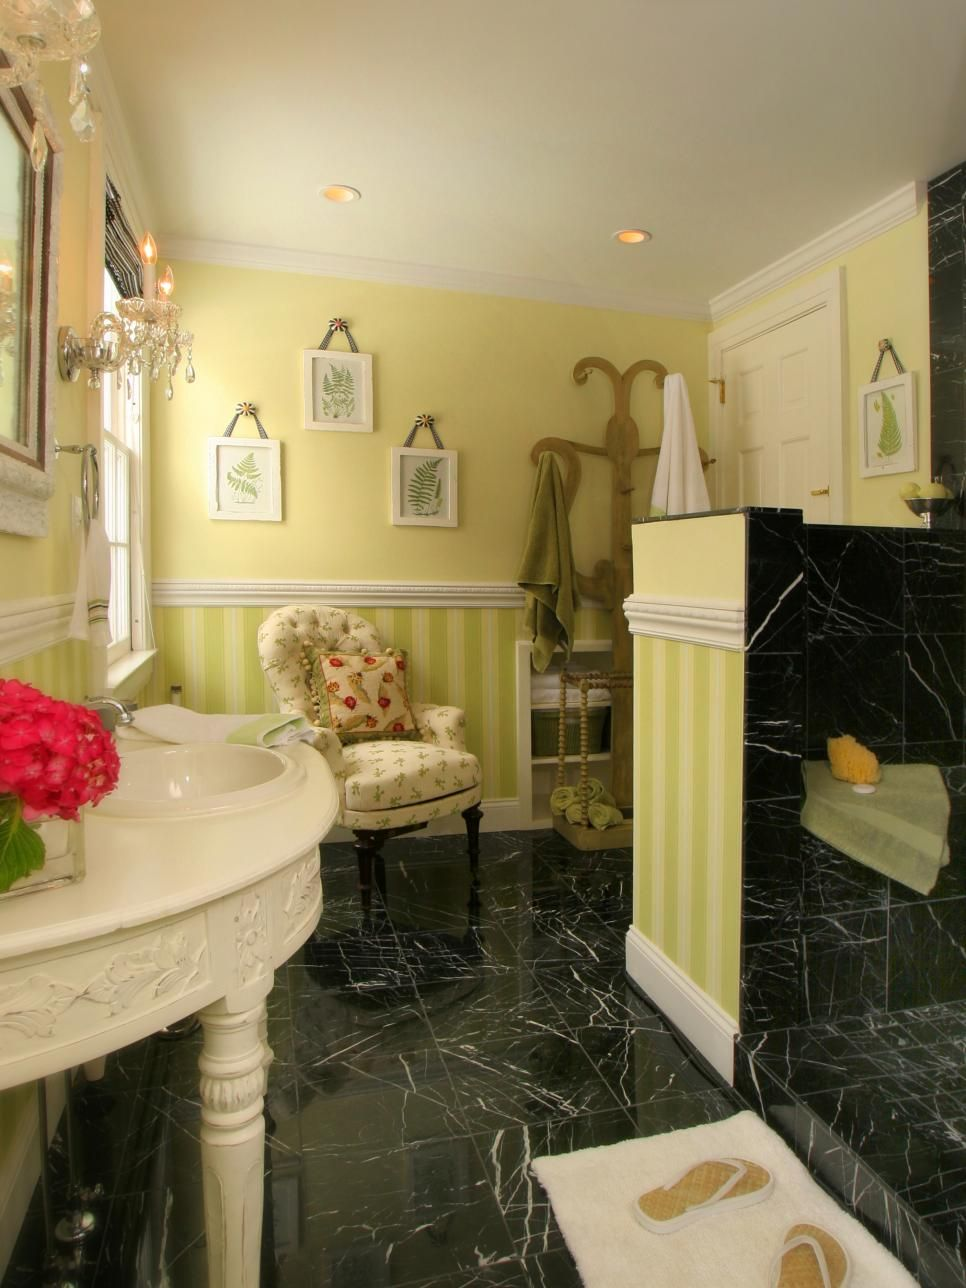 Colorful Bathrooms From HGTV Fans   Serene bathroom, Colorful ...